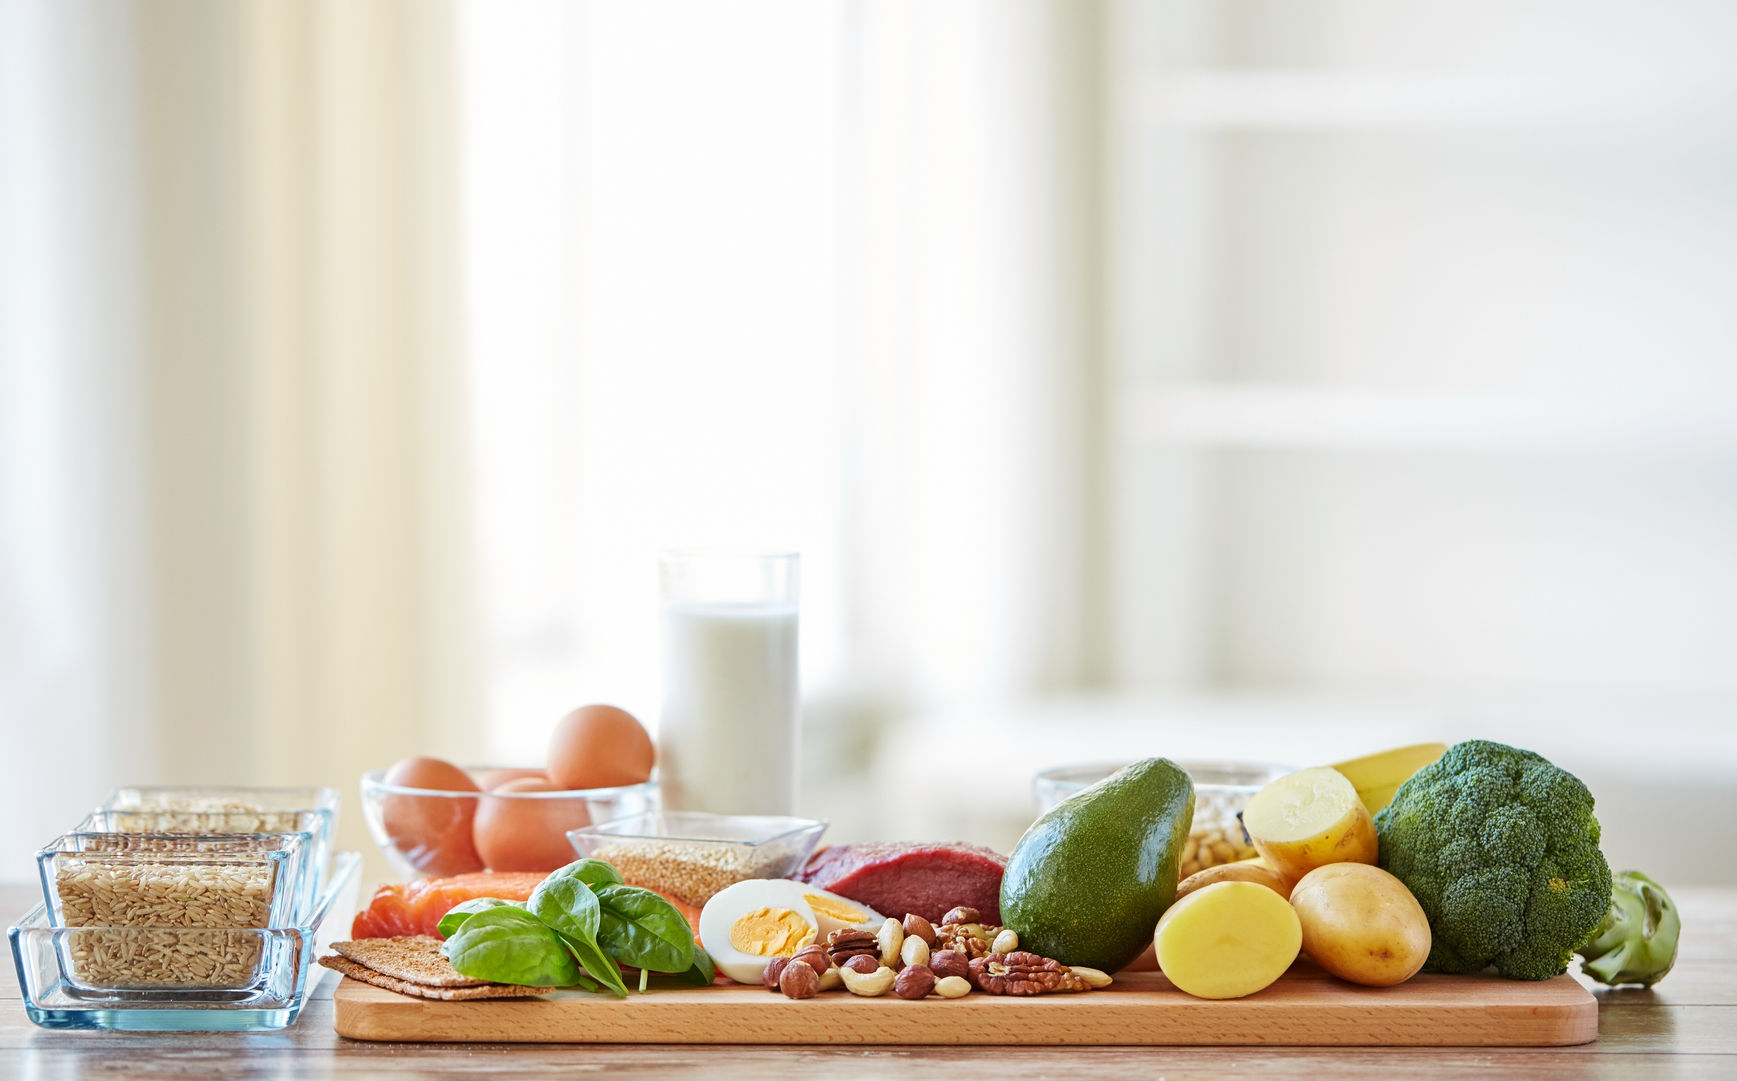 53927720 - balanced diet, cooking, culinary and food concept - close up of vegetables, fruits and meat on wooden table